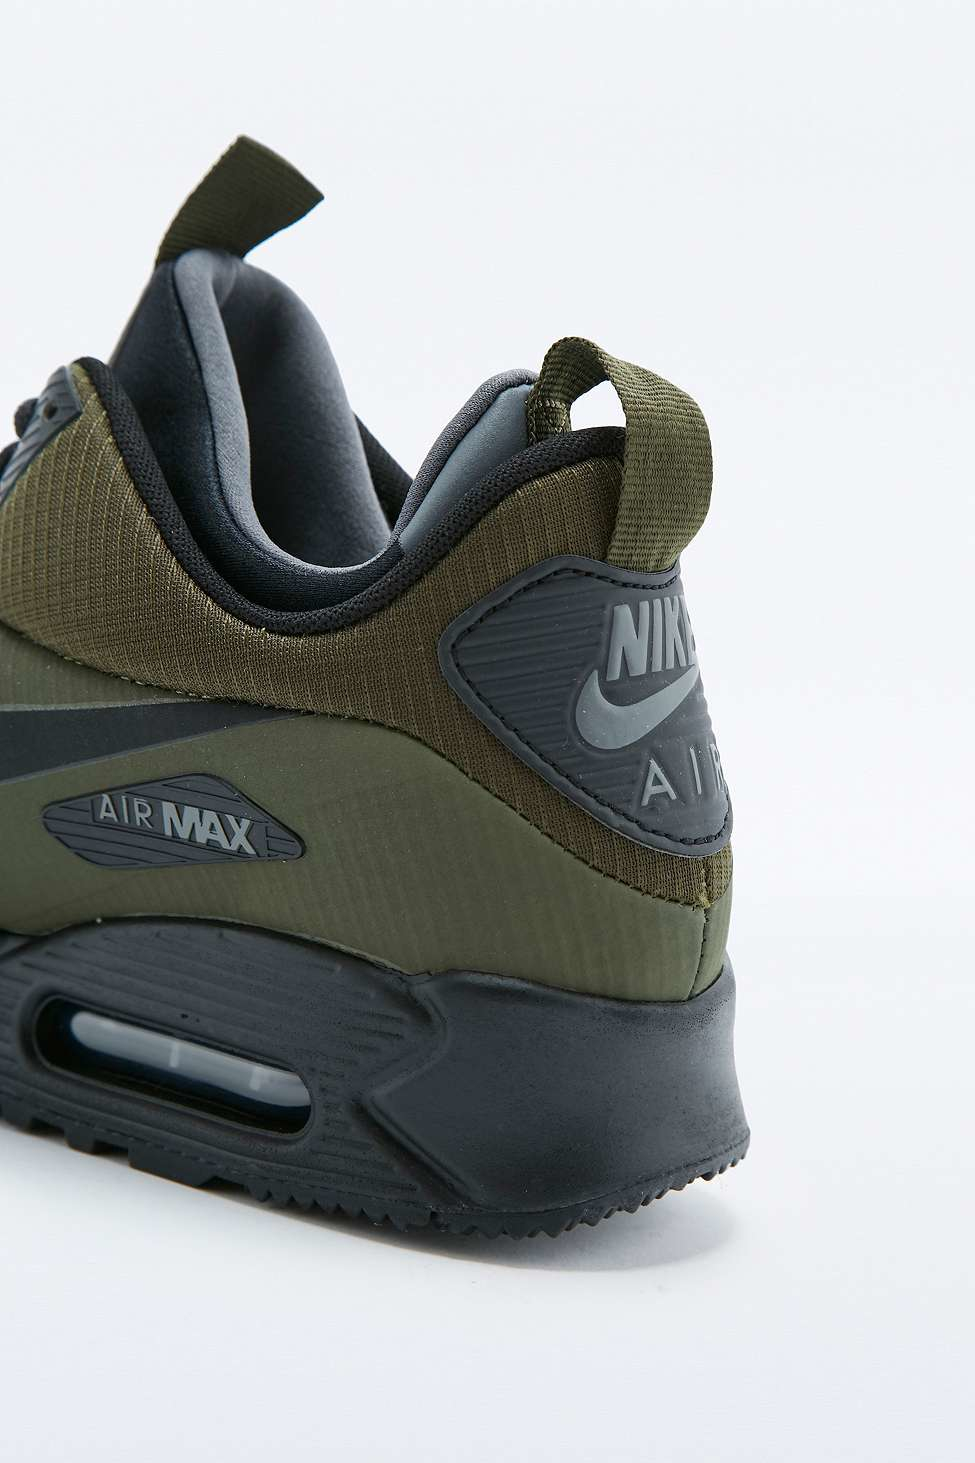 reputable site d35f3 5cbab Nike Air Max 90 Mid Winter Khaki Trainers in Green for Men - Lyst